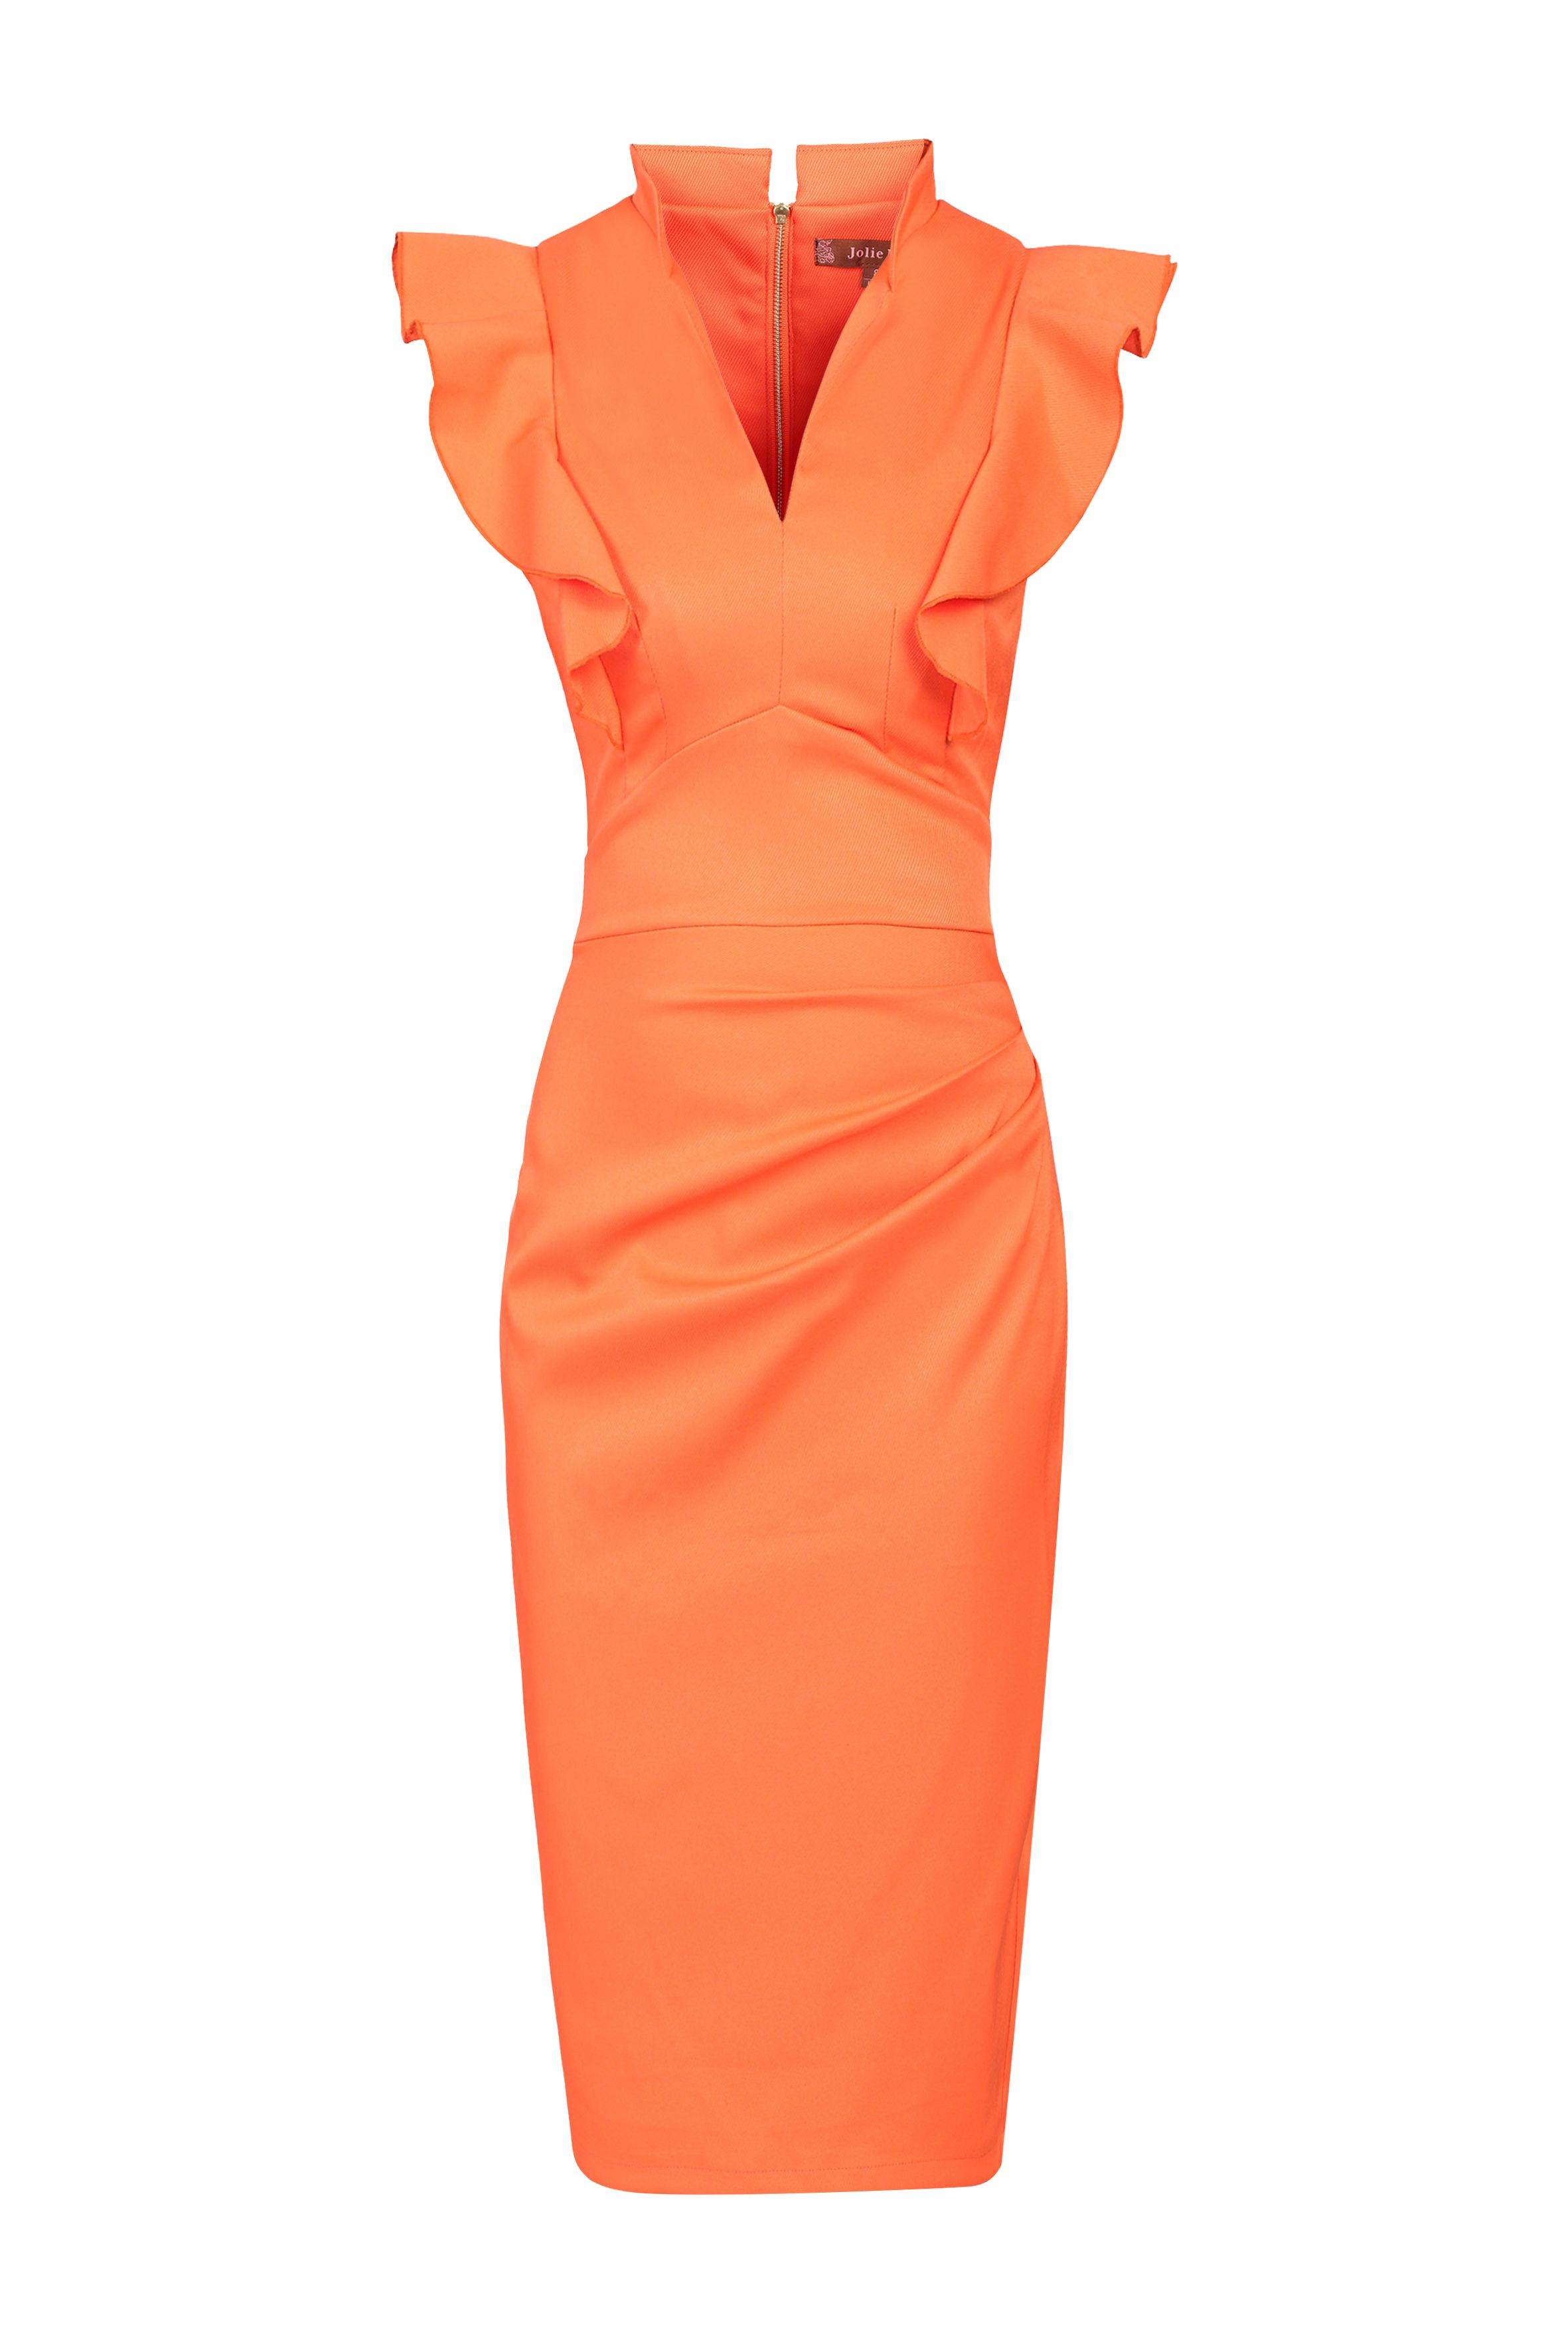 Jolie Moi Frill Shoulder V Neck Dress, Coral